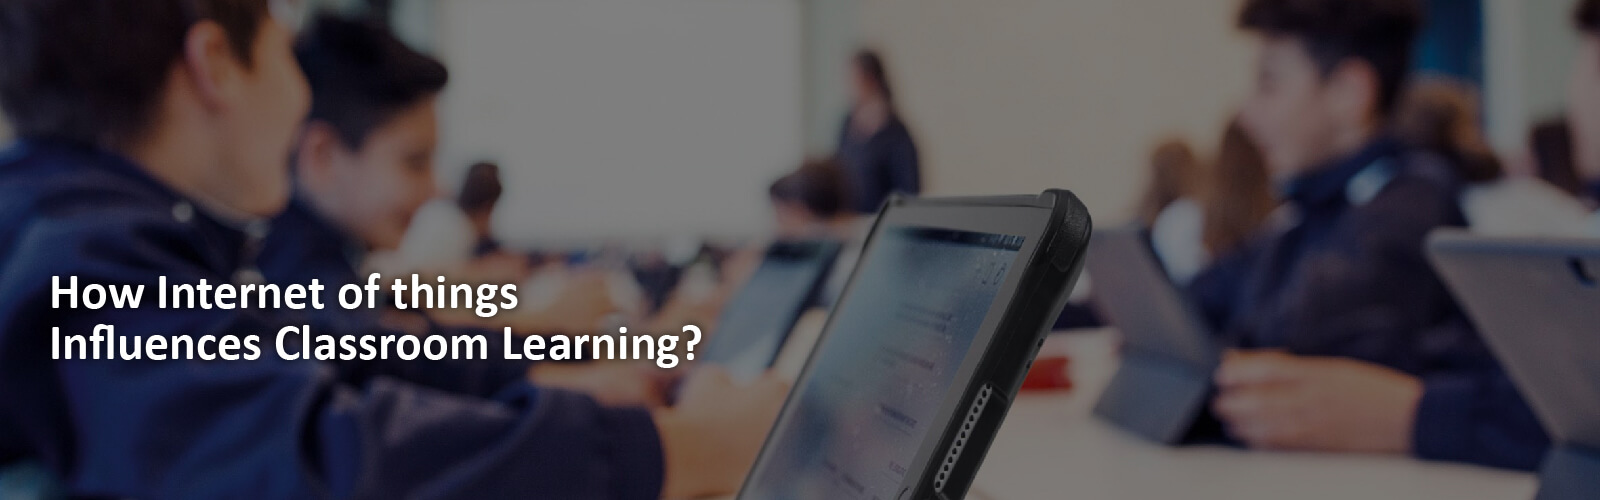 How Internet of Things Influences Classroom Learning?